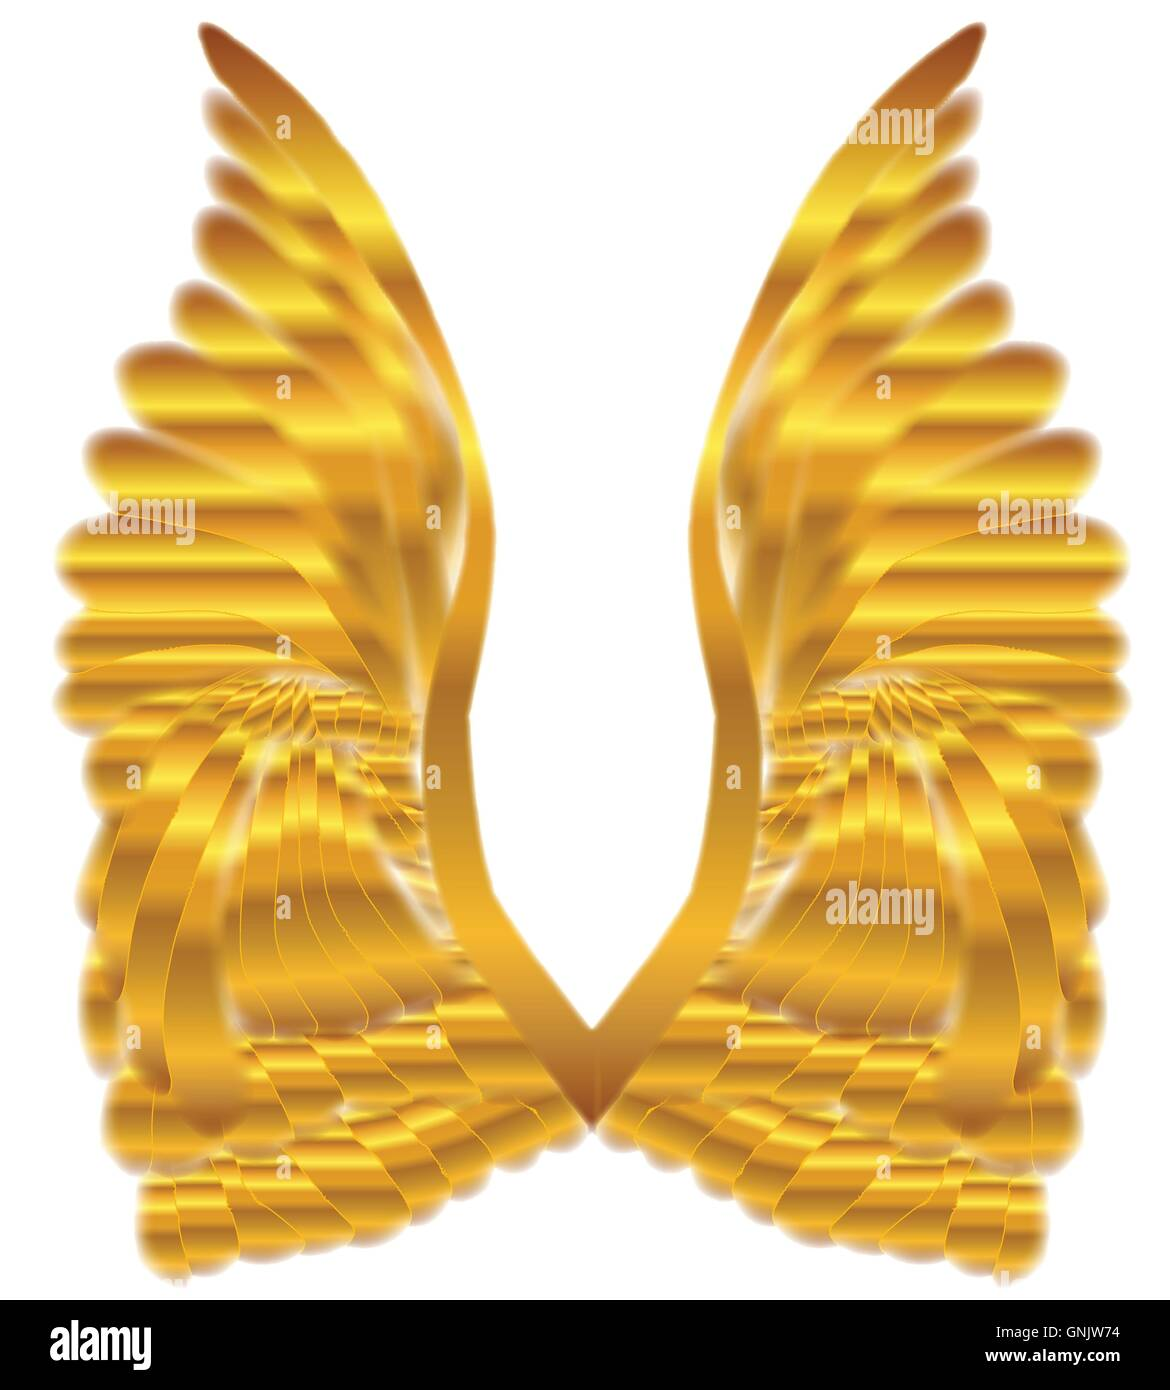 Guardian Angel Wings Stock Photos & Guardian Angel Wings Stock ...